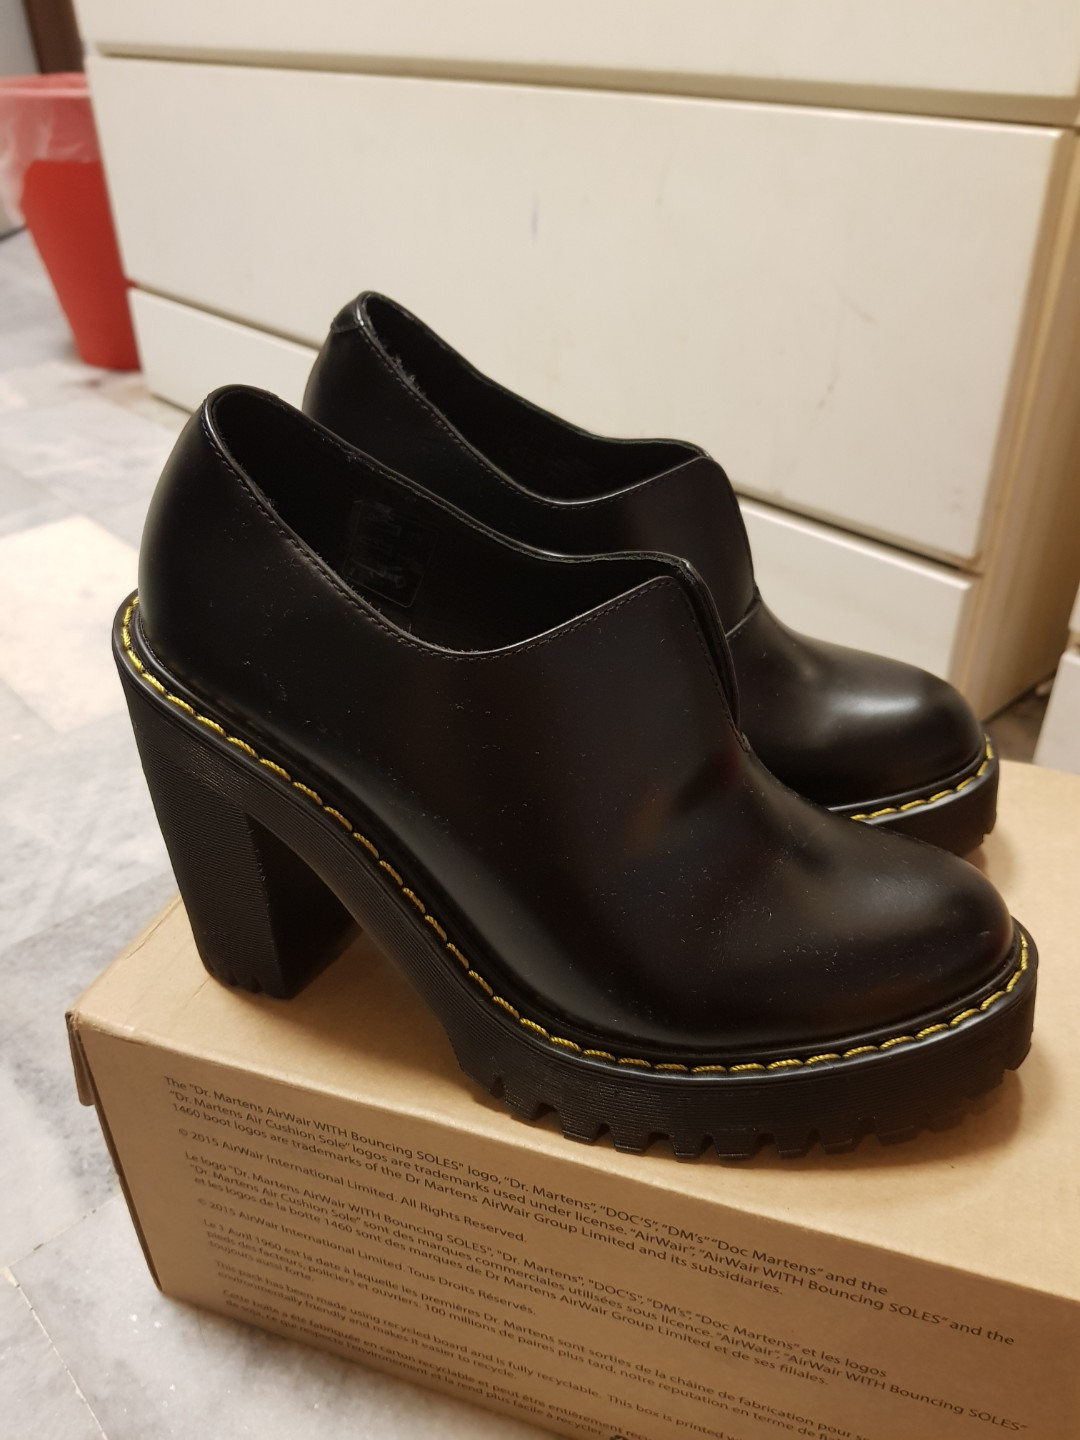 15885deef9f8d Dr Martens Cordelia Heel Boots, Women's Fashion, Shoes on Carousell